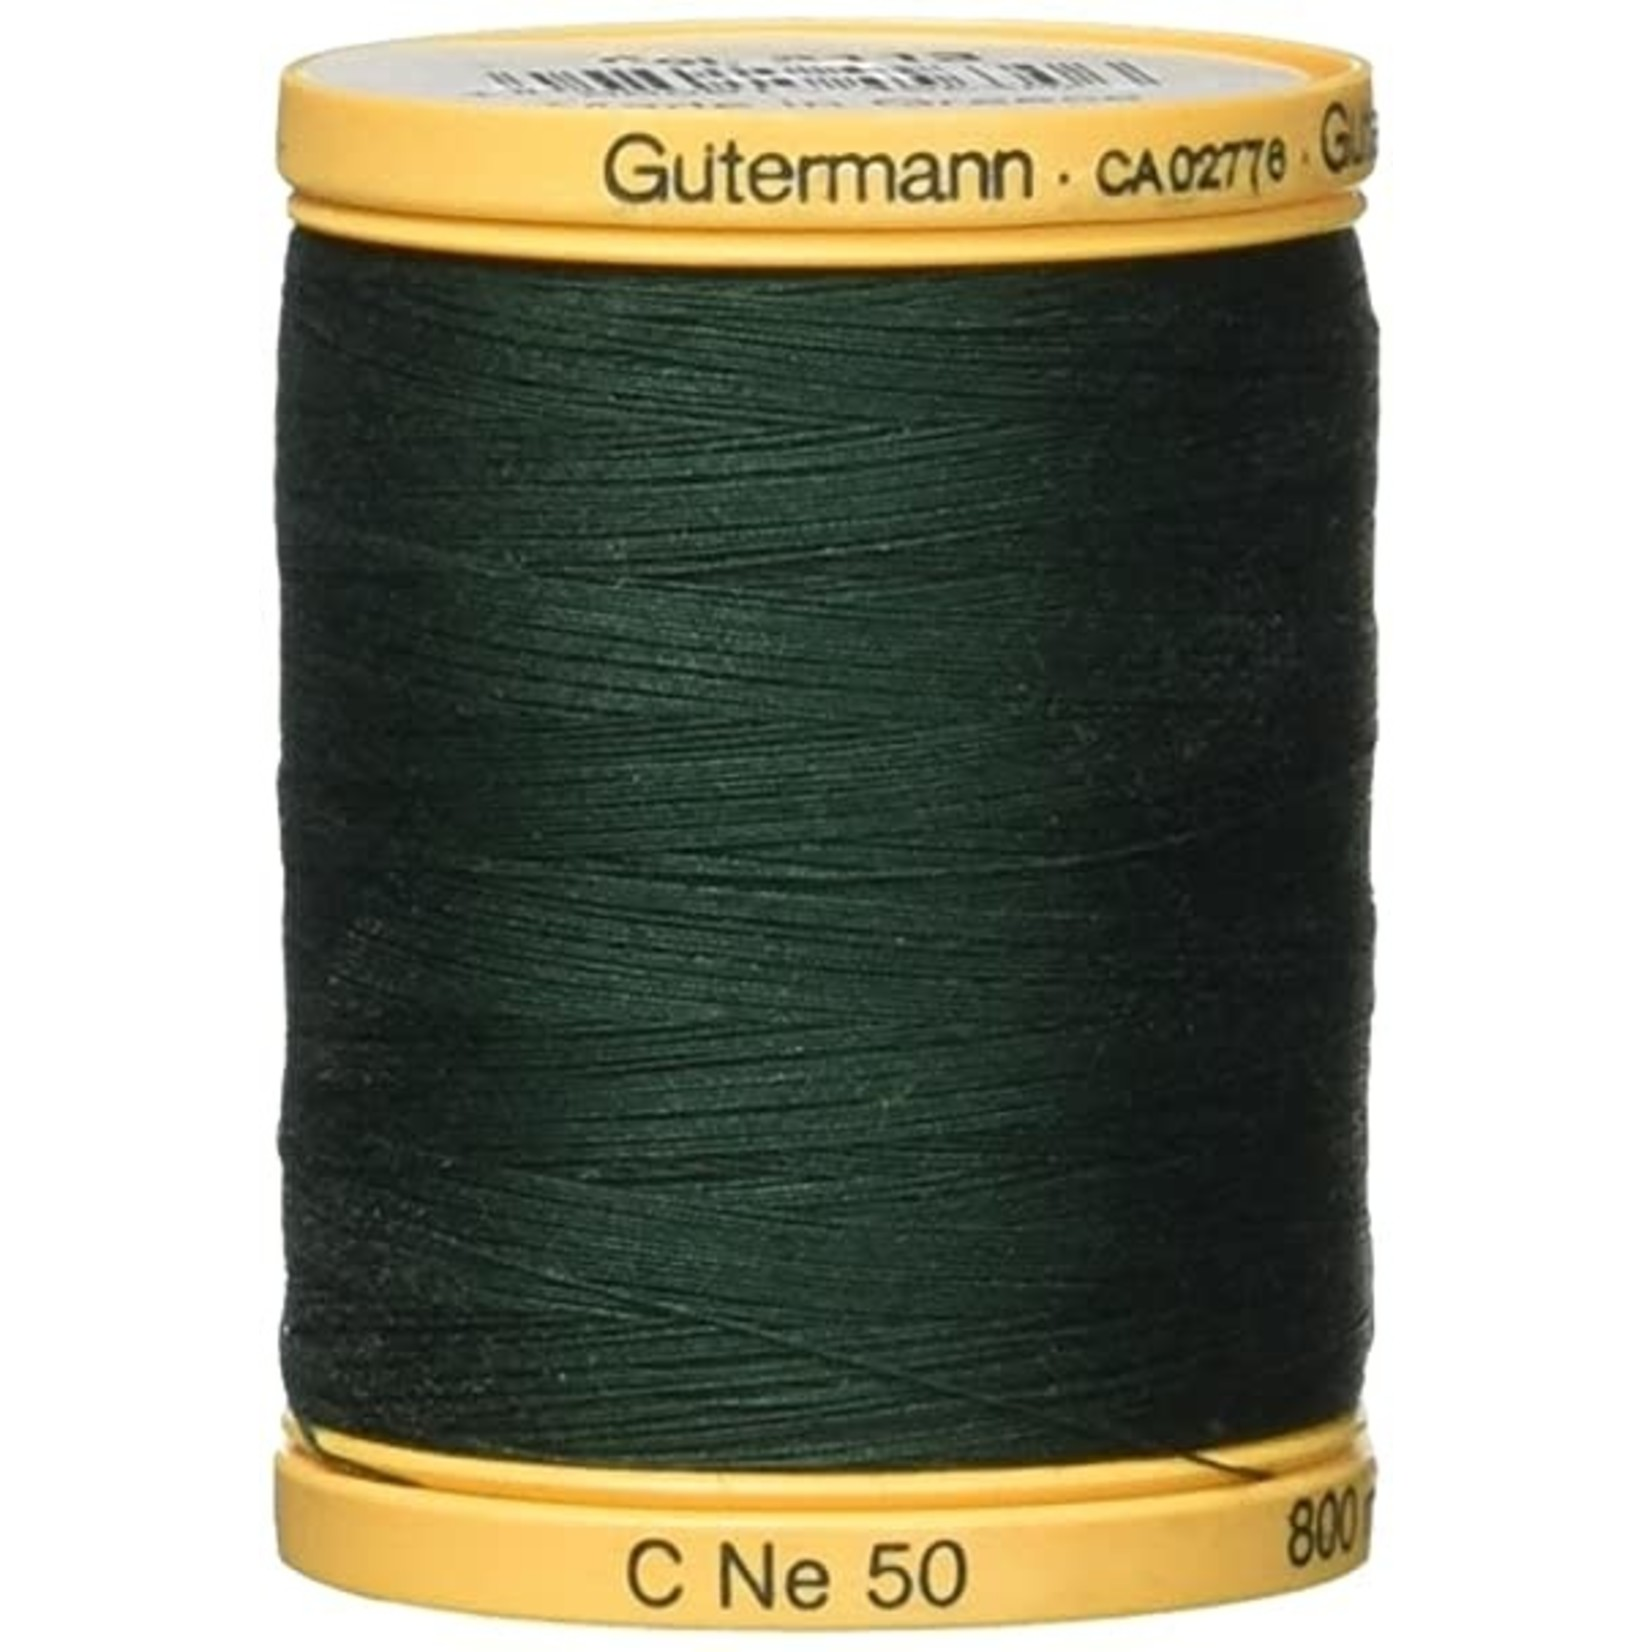 GUTERMANN GÜTERMANN Cotton 50wt Thread 800m - Hunter Green